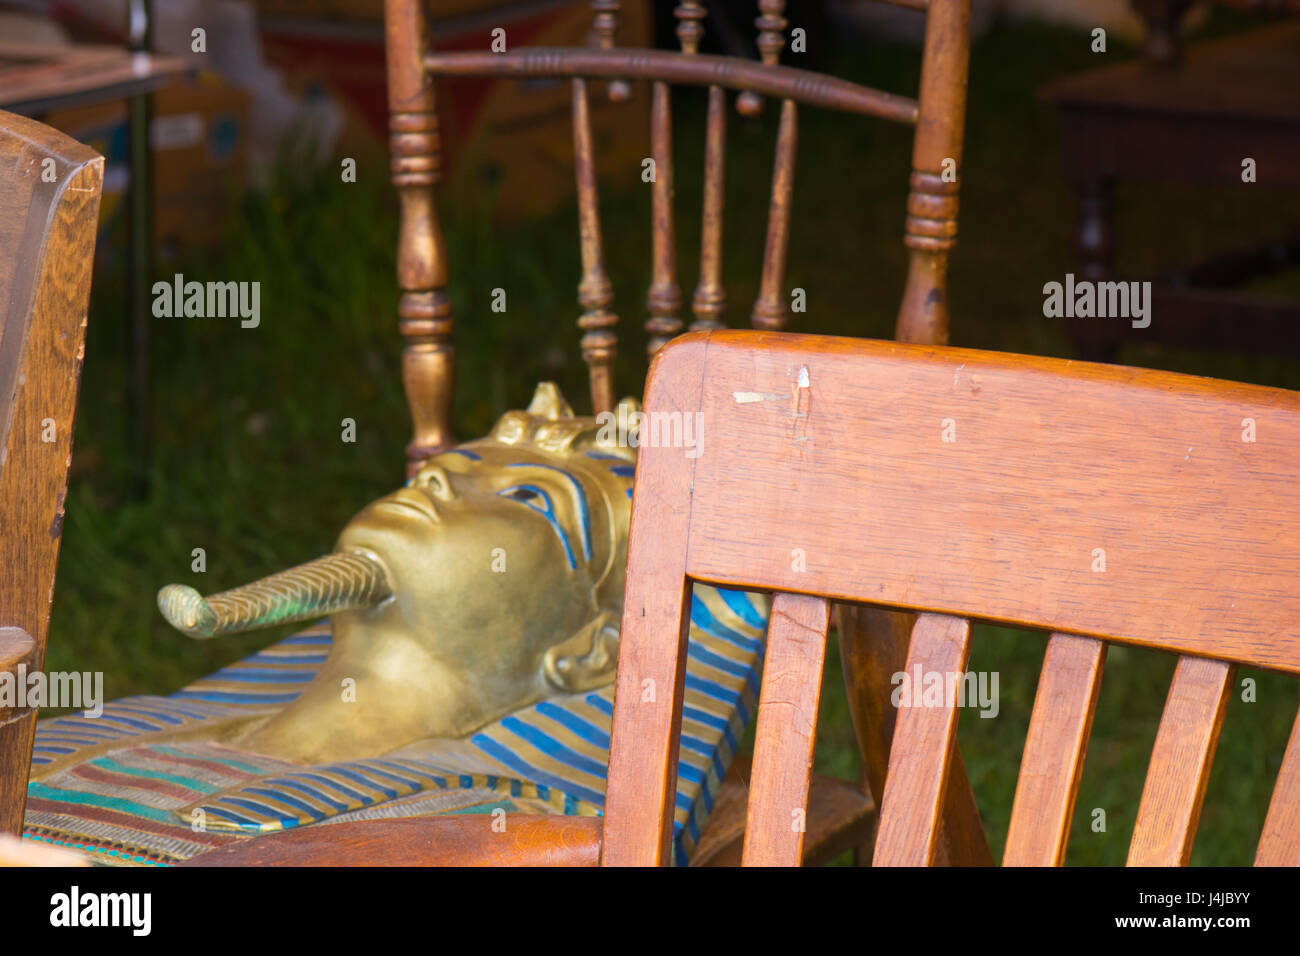 King Tut mask rests on antique chairs at flea market. - Stock Image